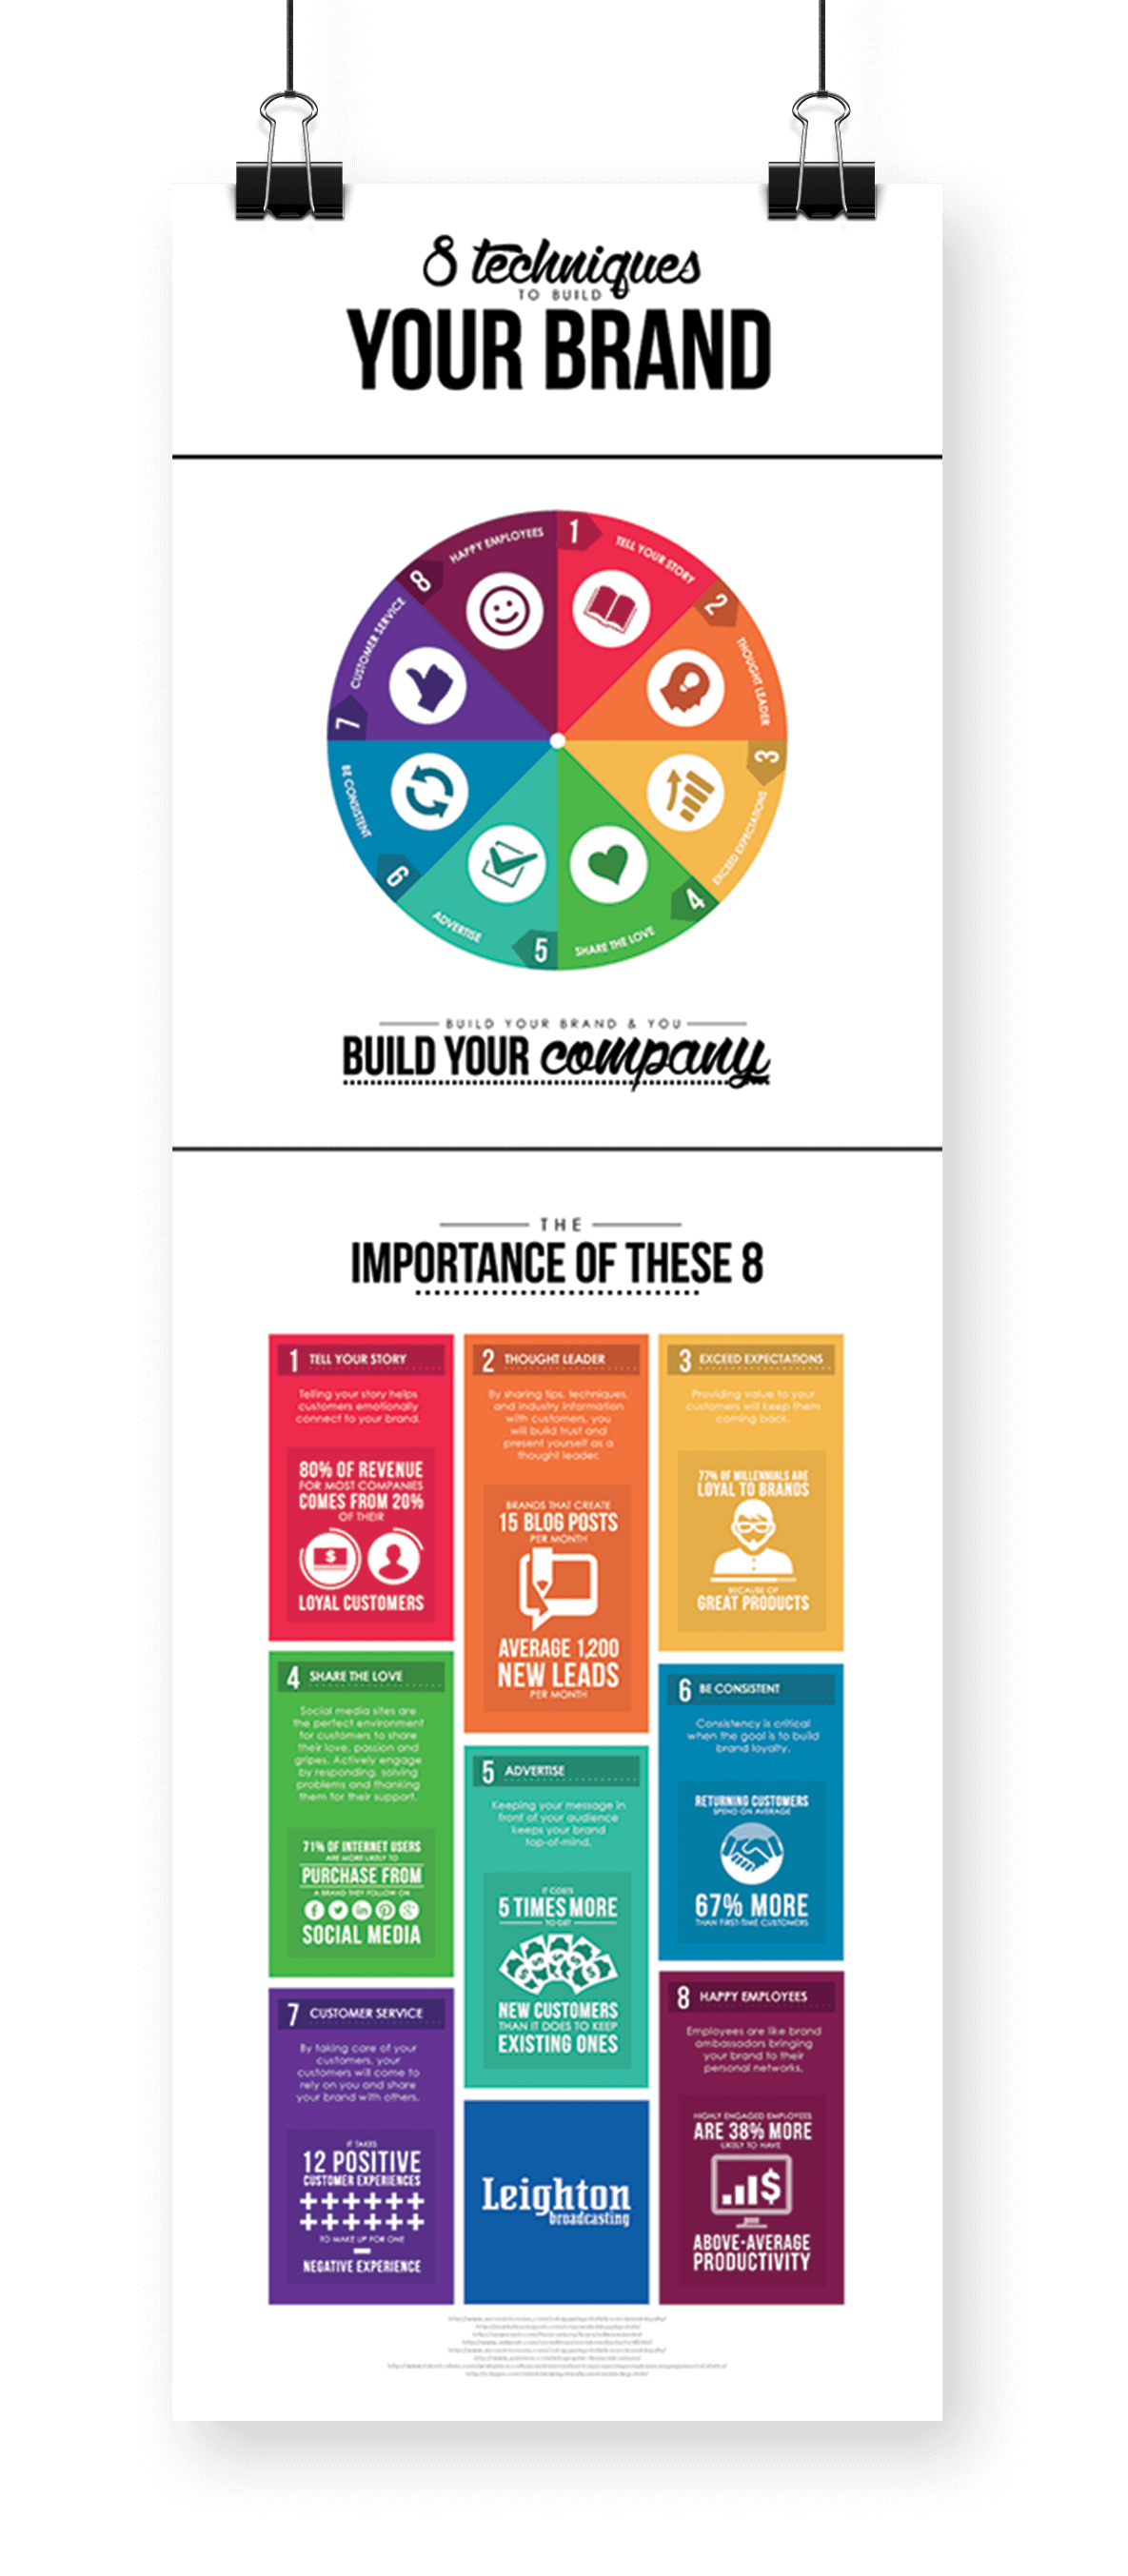 8 techniques to build your brand infographic